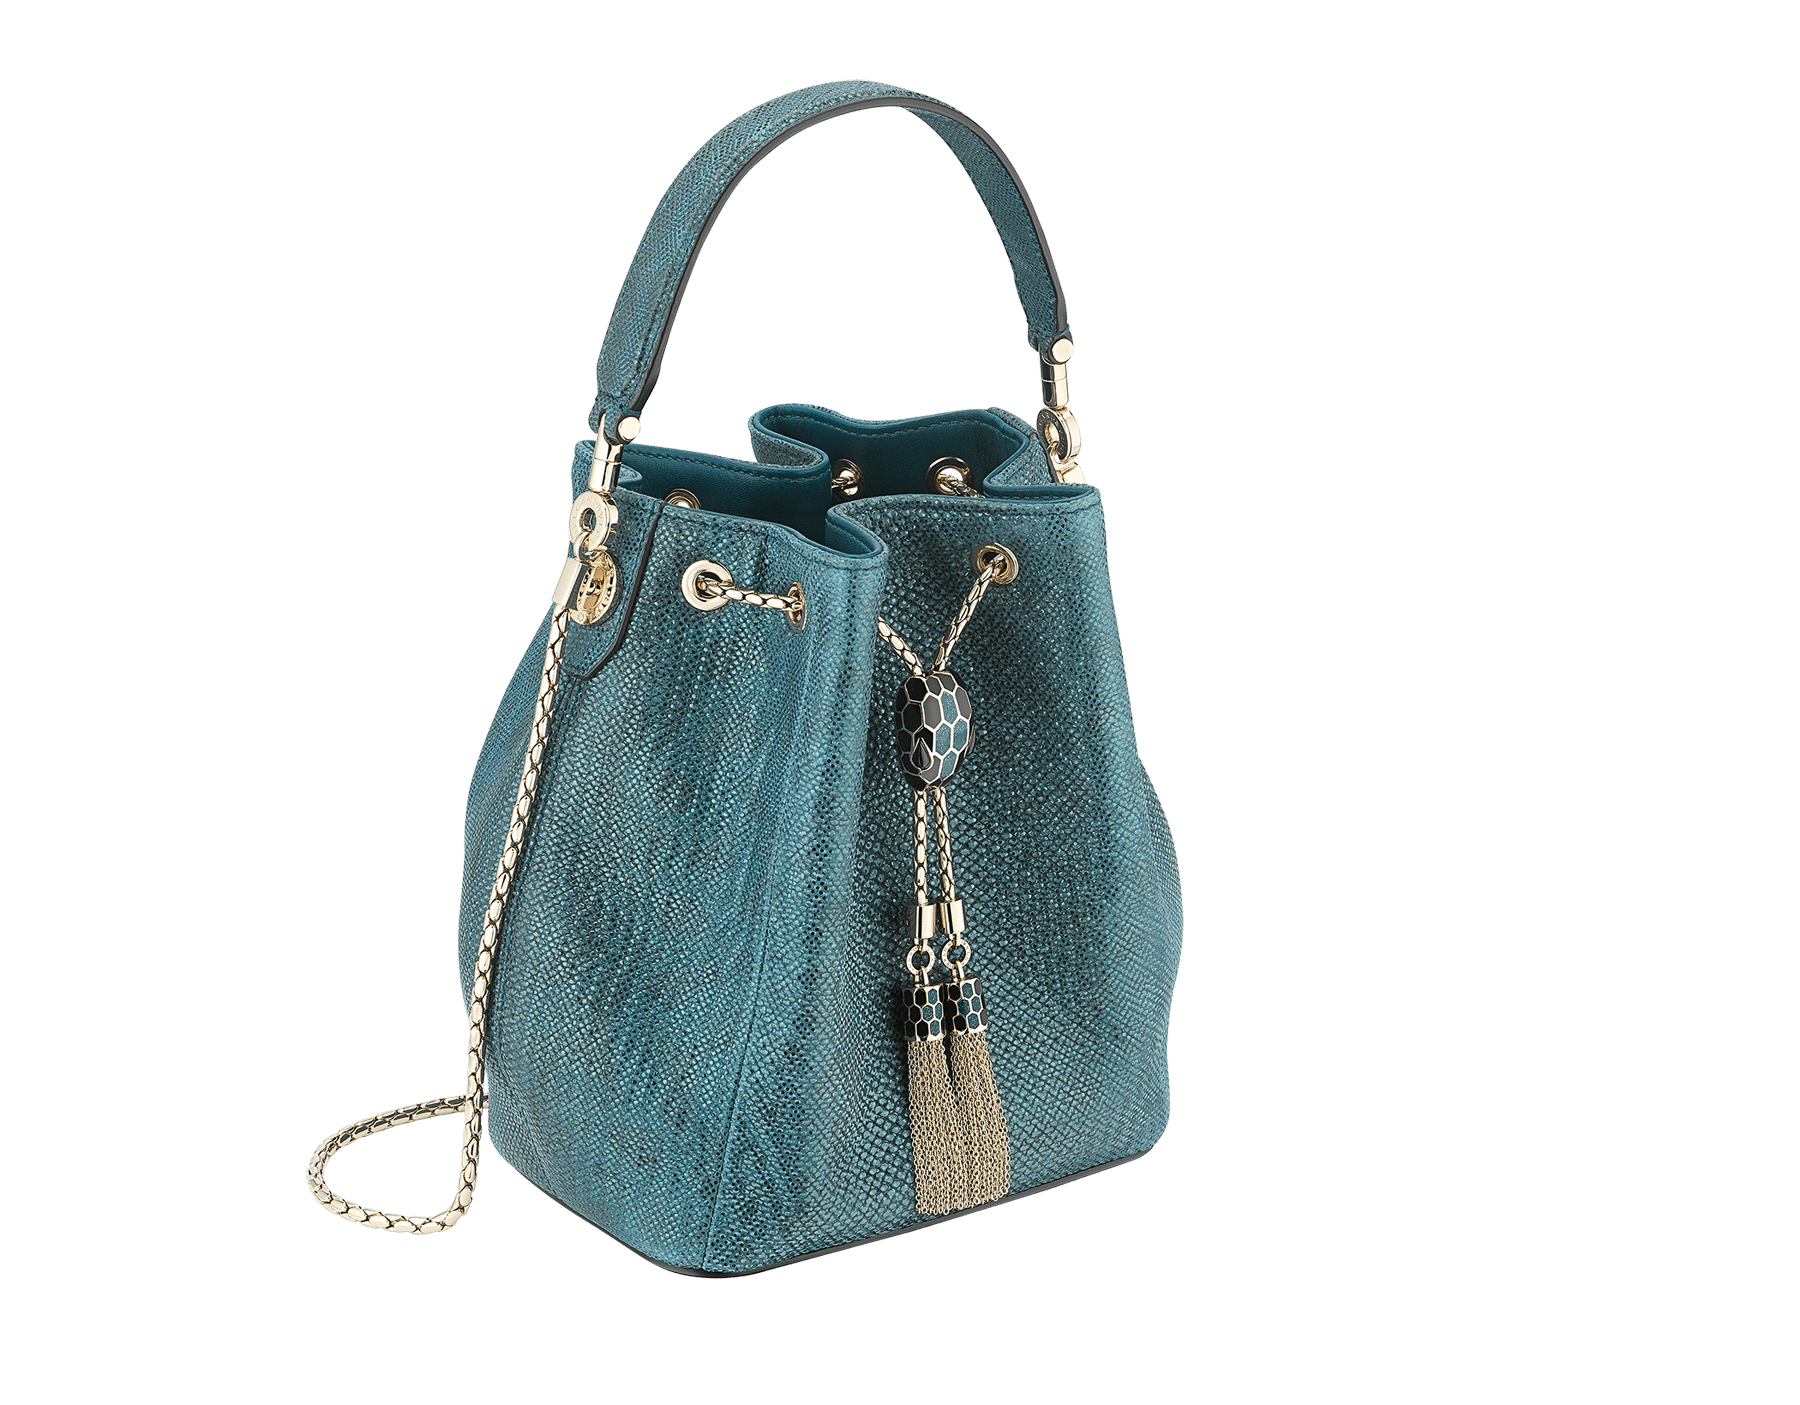 Bucket Serpenti Forever in deep jade metallic karung skin and deep jade nappa internal lining. Hardware in light gold plated brass and snakehead closure in black and glitter deep jade enamel, with eyes in black onyx. 287950 image 2